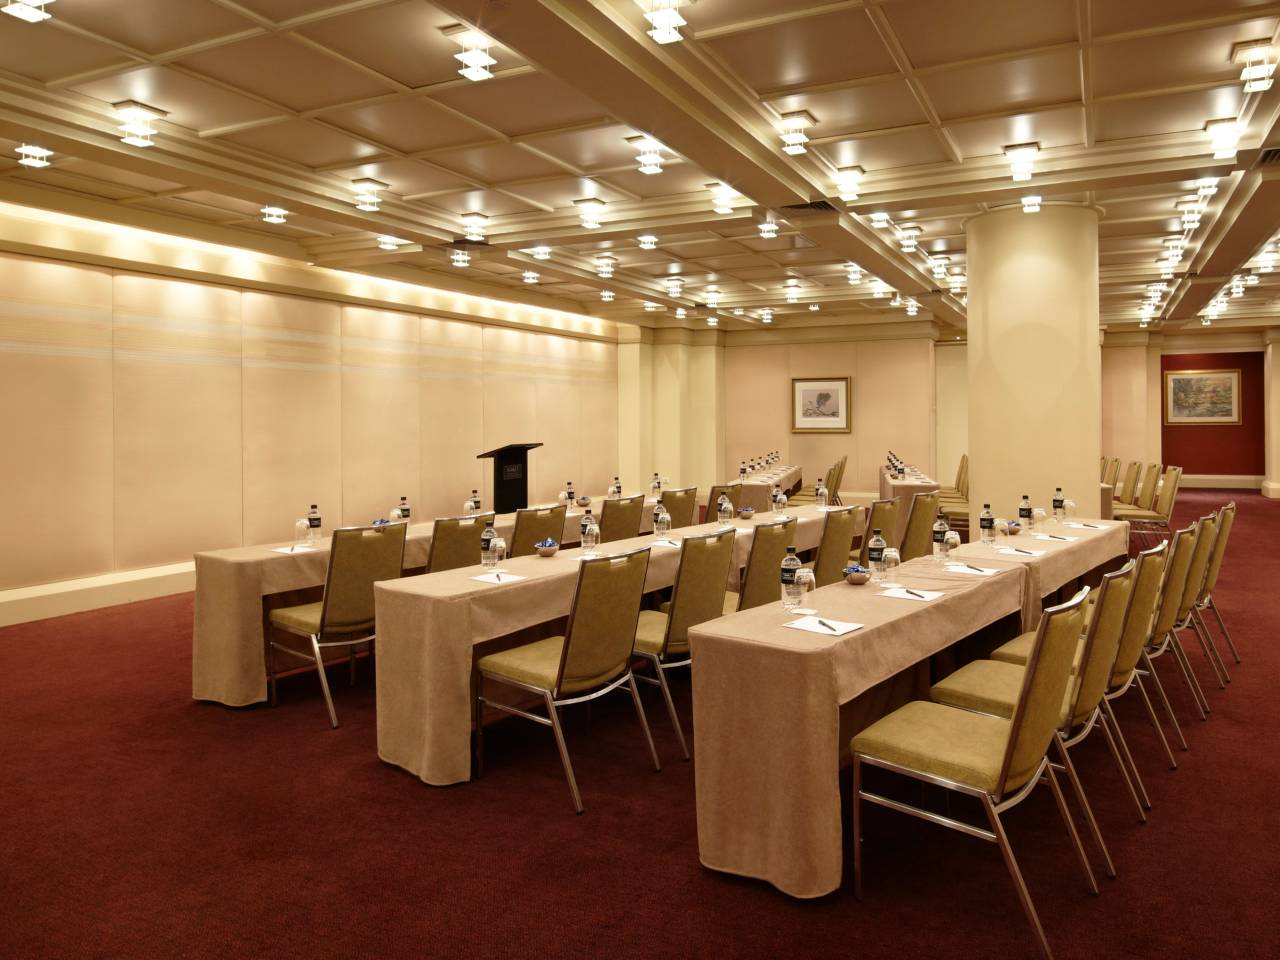 Table And Chairs Set Up Classroom Style At A Hotel Meeting Room